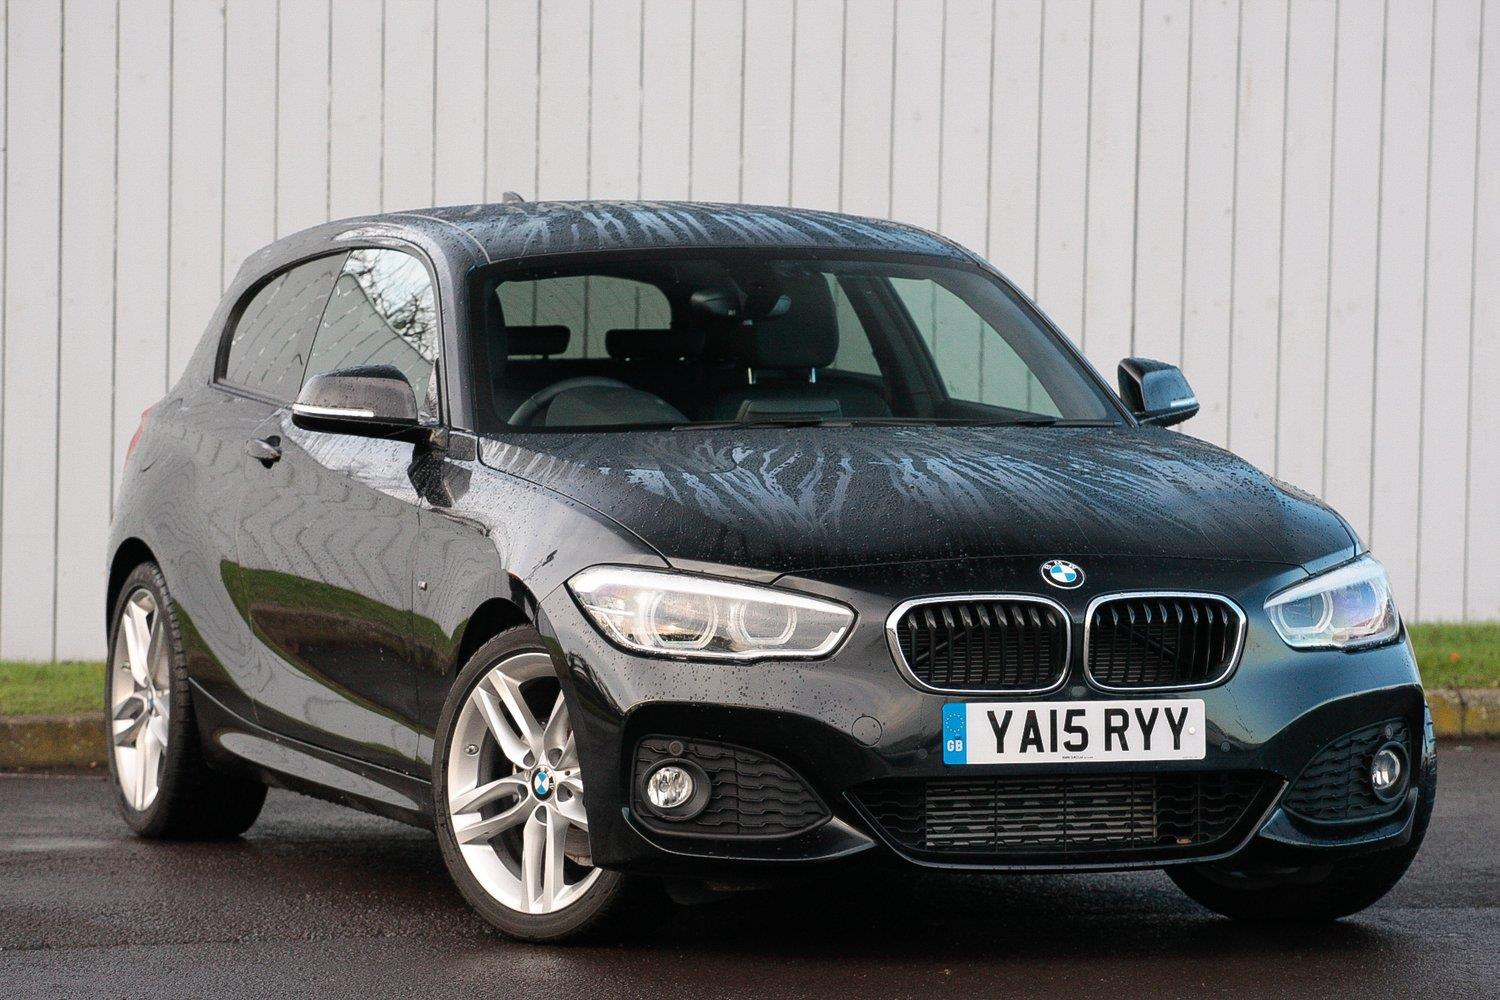 BMW 1 Series 3-door Sports Hatch YA15RYY - Image 8